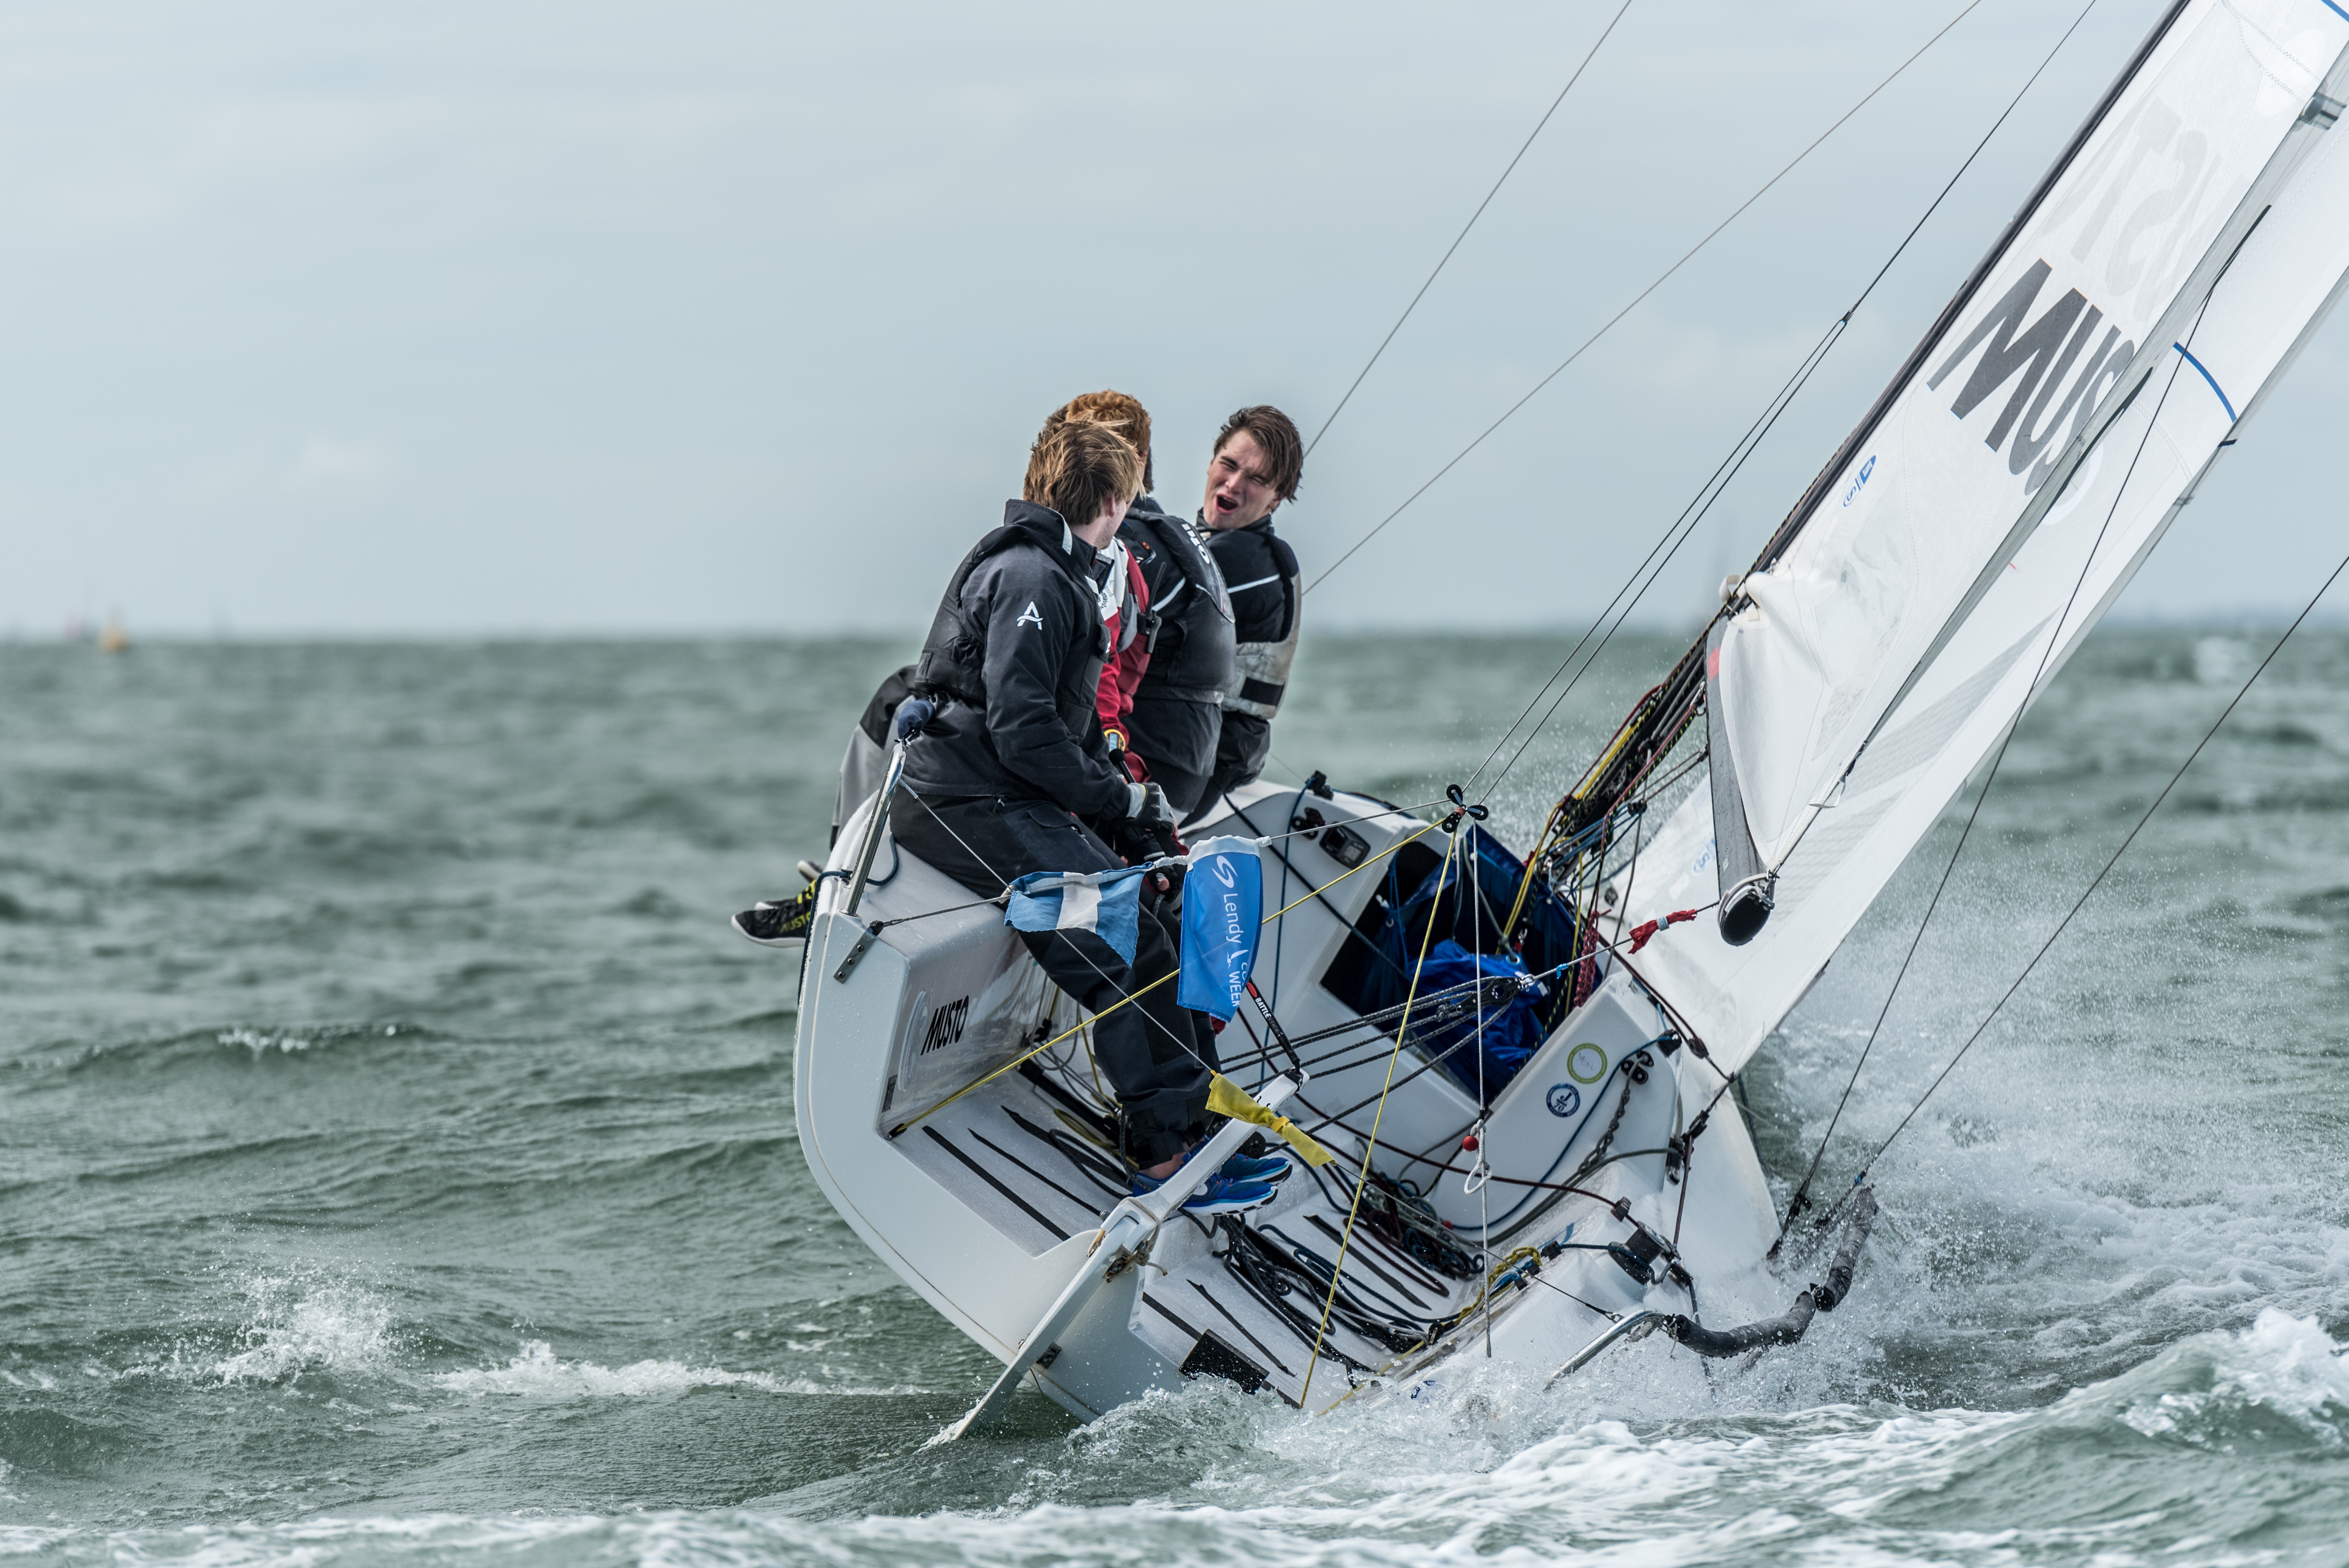 Sailors wearing Musto gear in a sailing boat. The firm has been bought by Helly Hansen